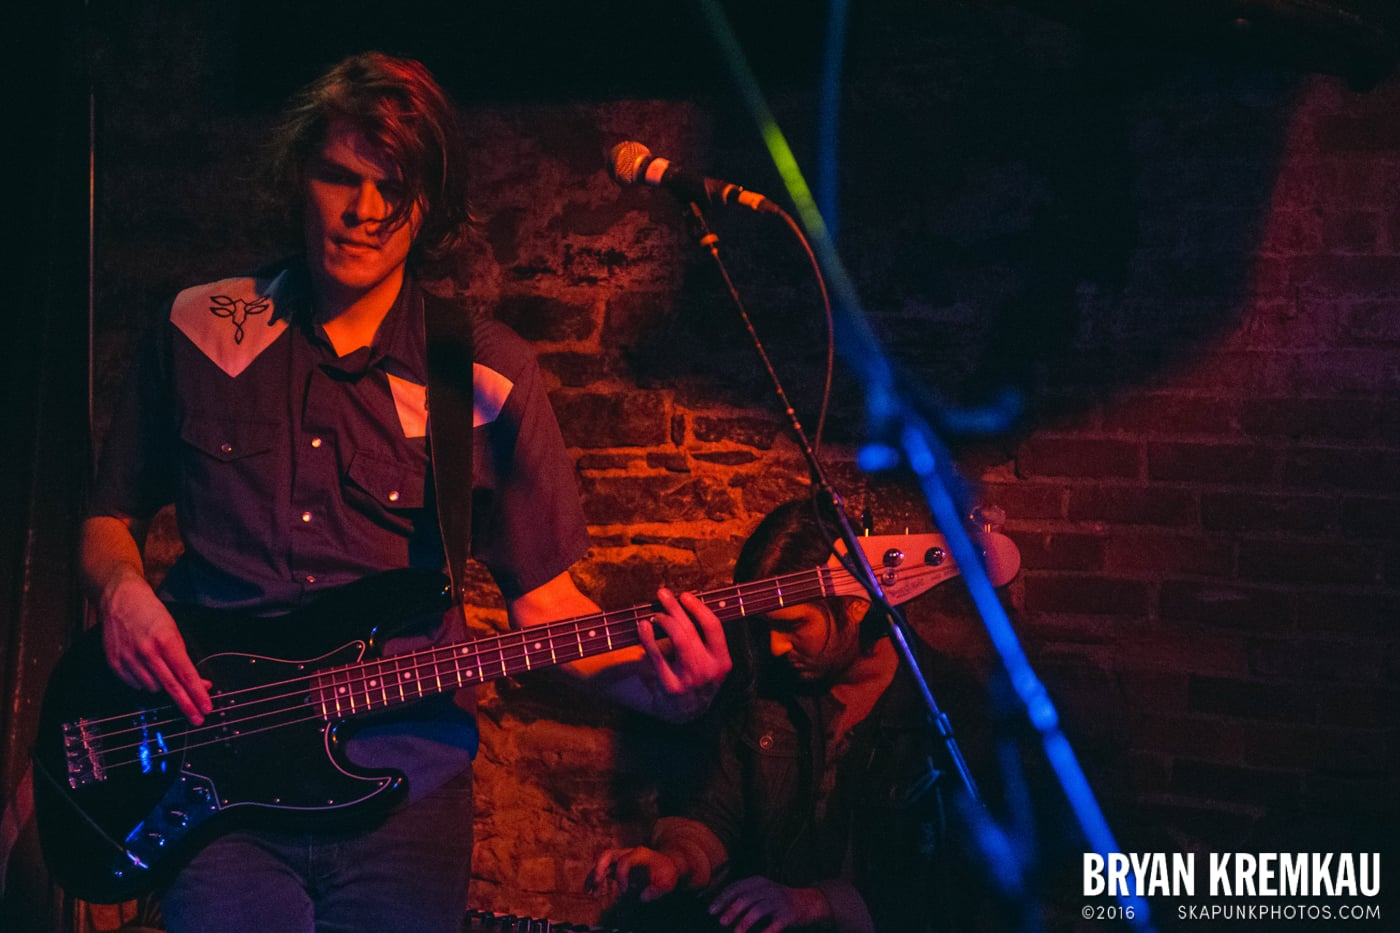 Trapper Schoepp & The Shades @ Bowery Electric, NYC - 11.20.14 (30)